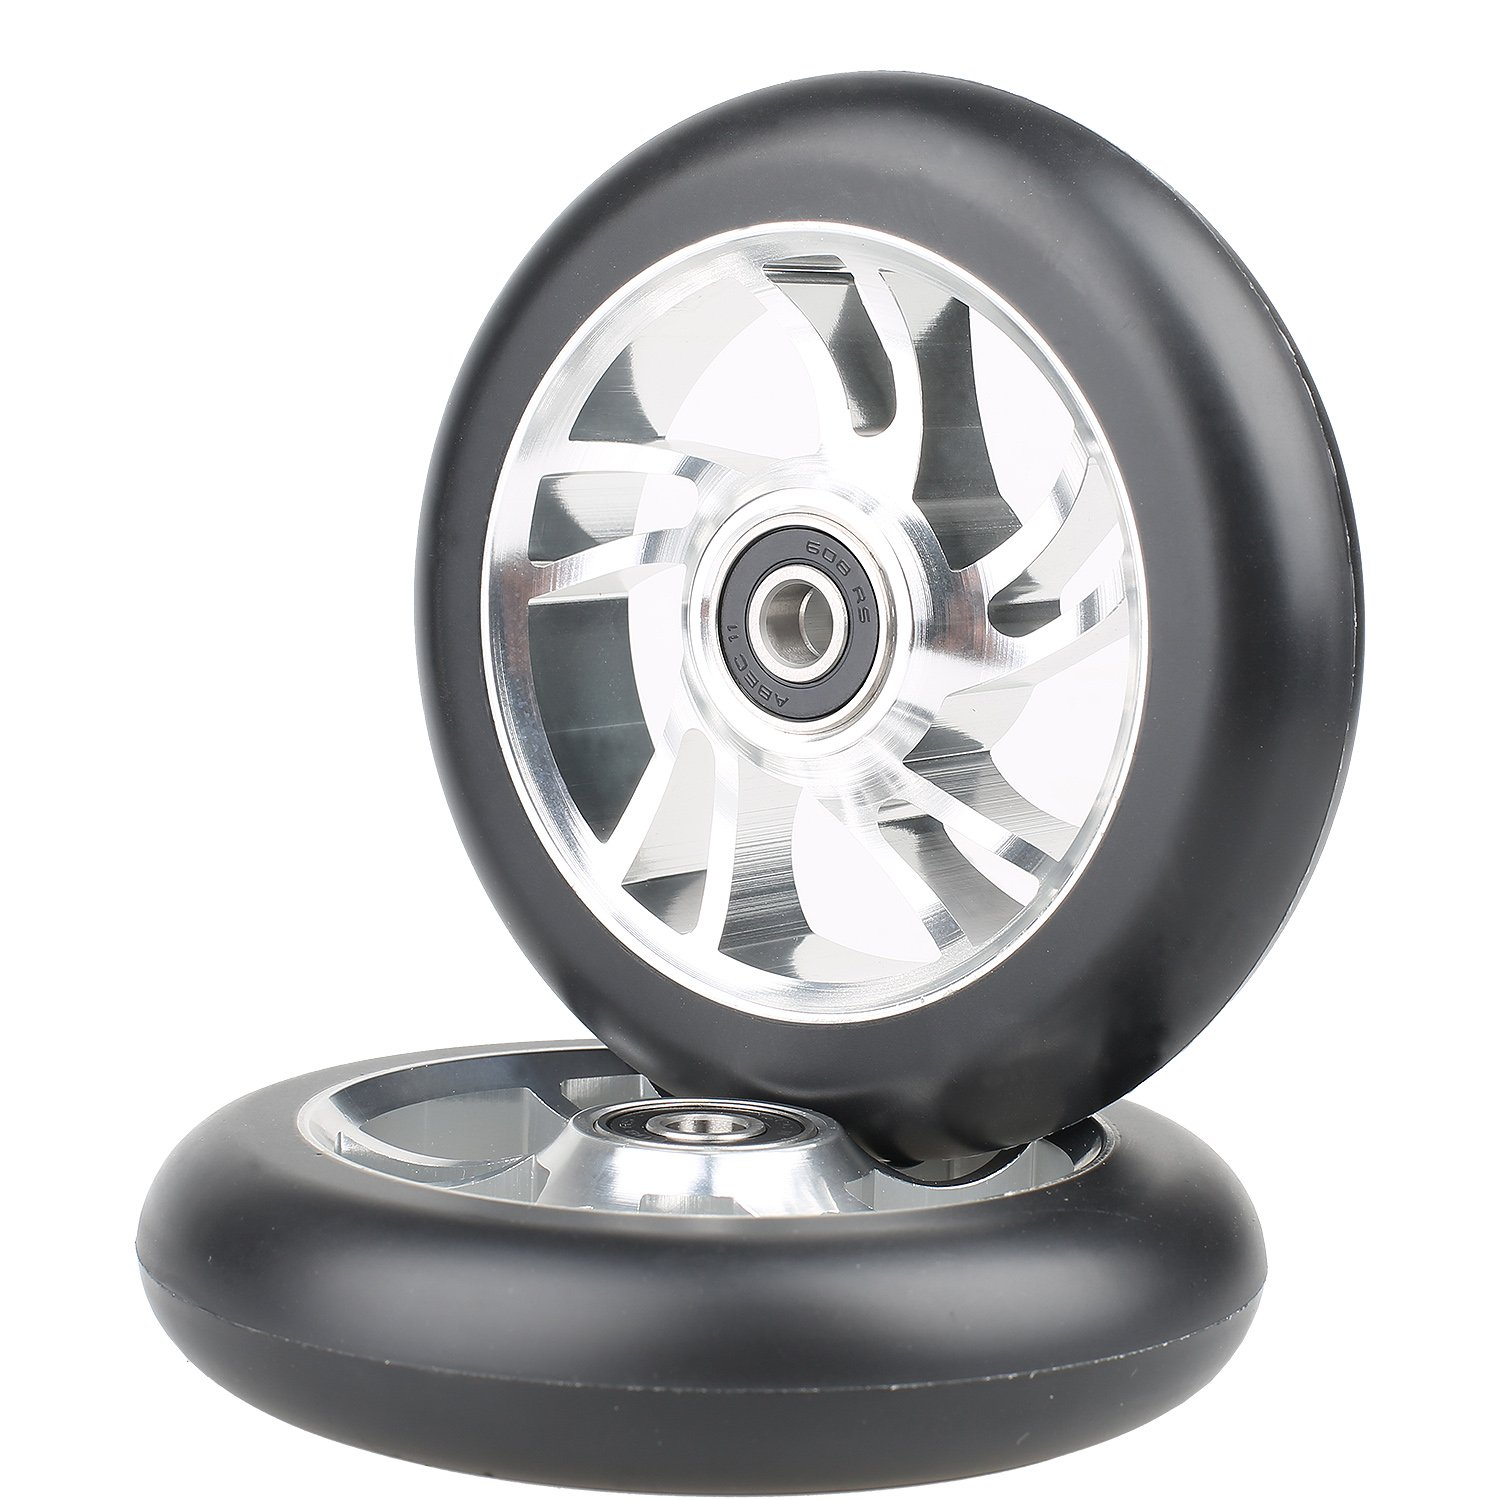 Kutrick 110mm Pro Stunt Scooter Replacement Wheels with ABEC 9 Bearing Complete 2pcs Wheels